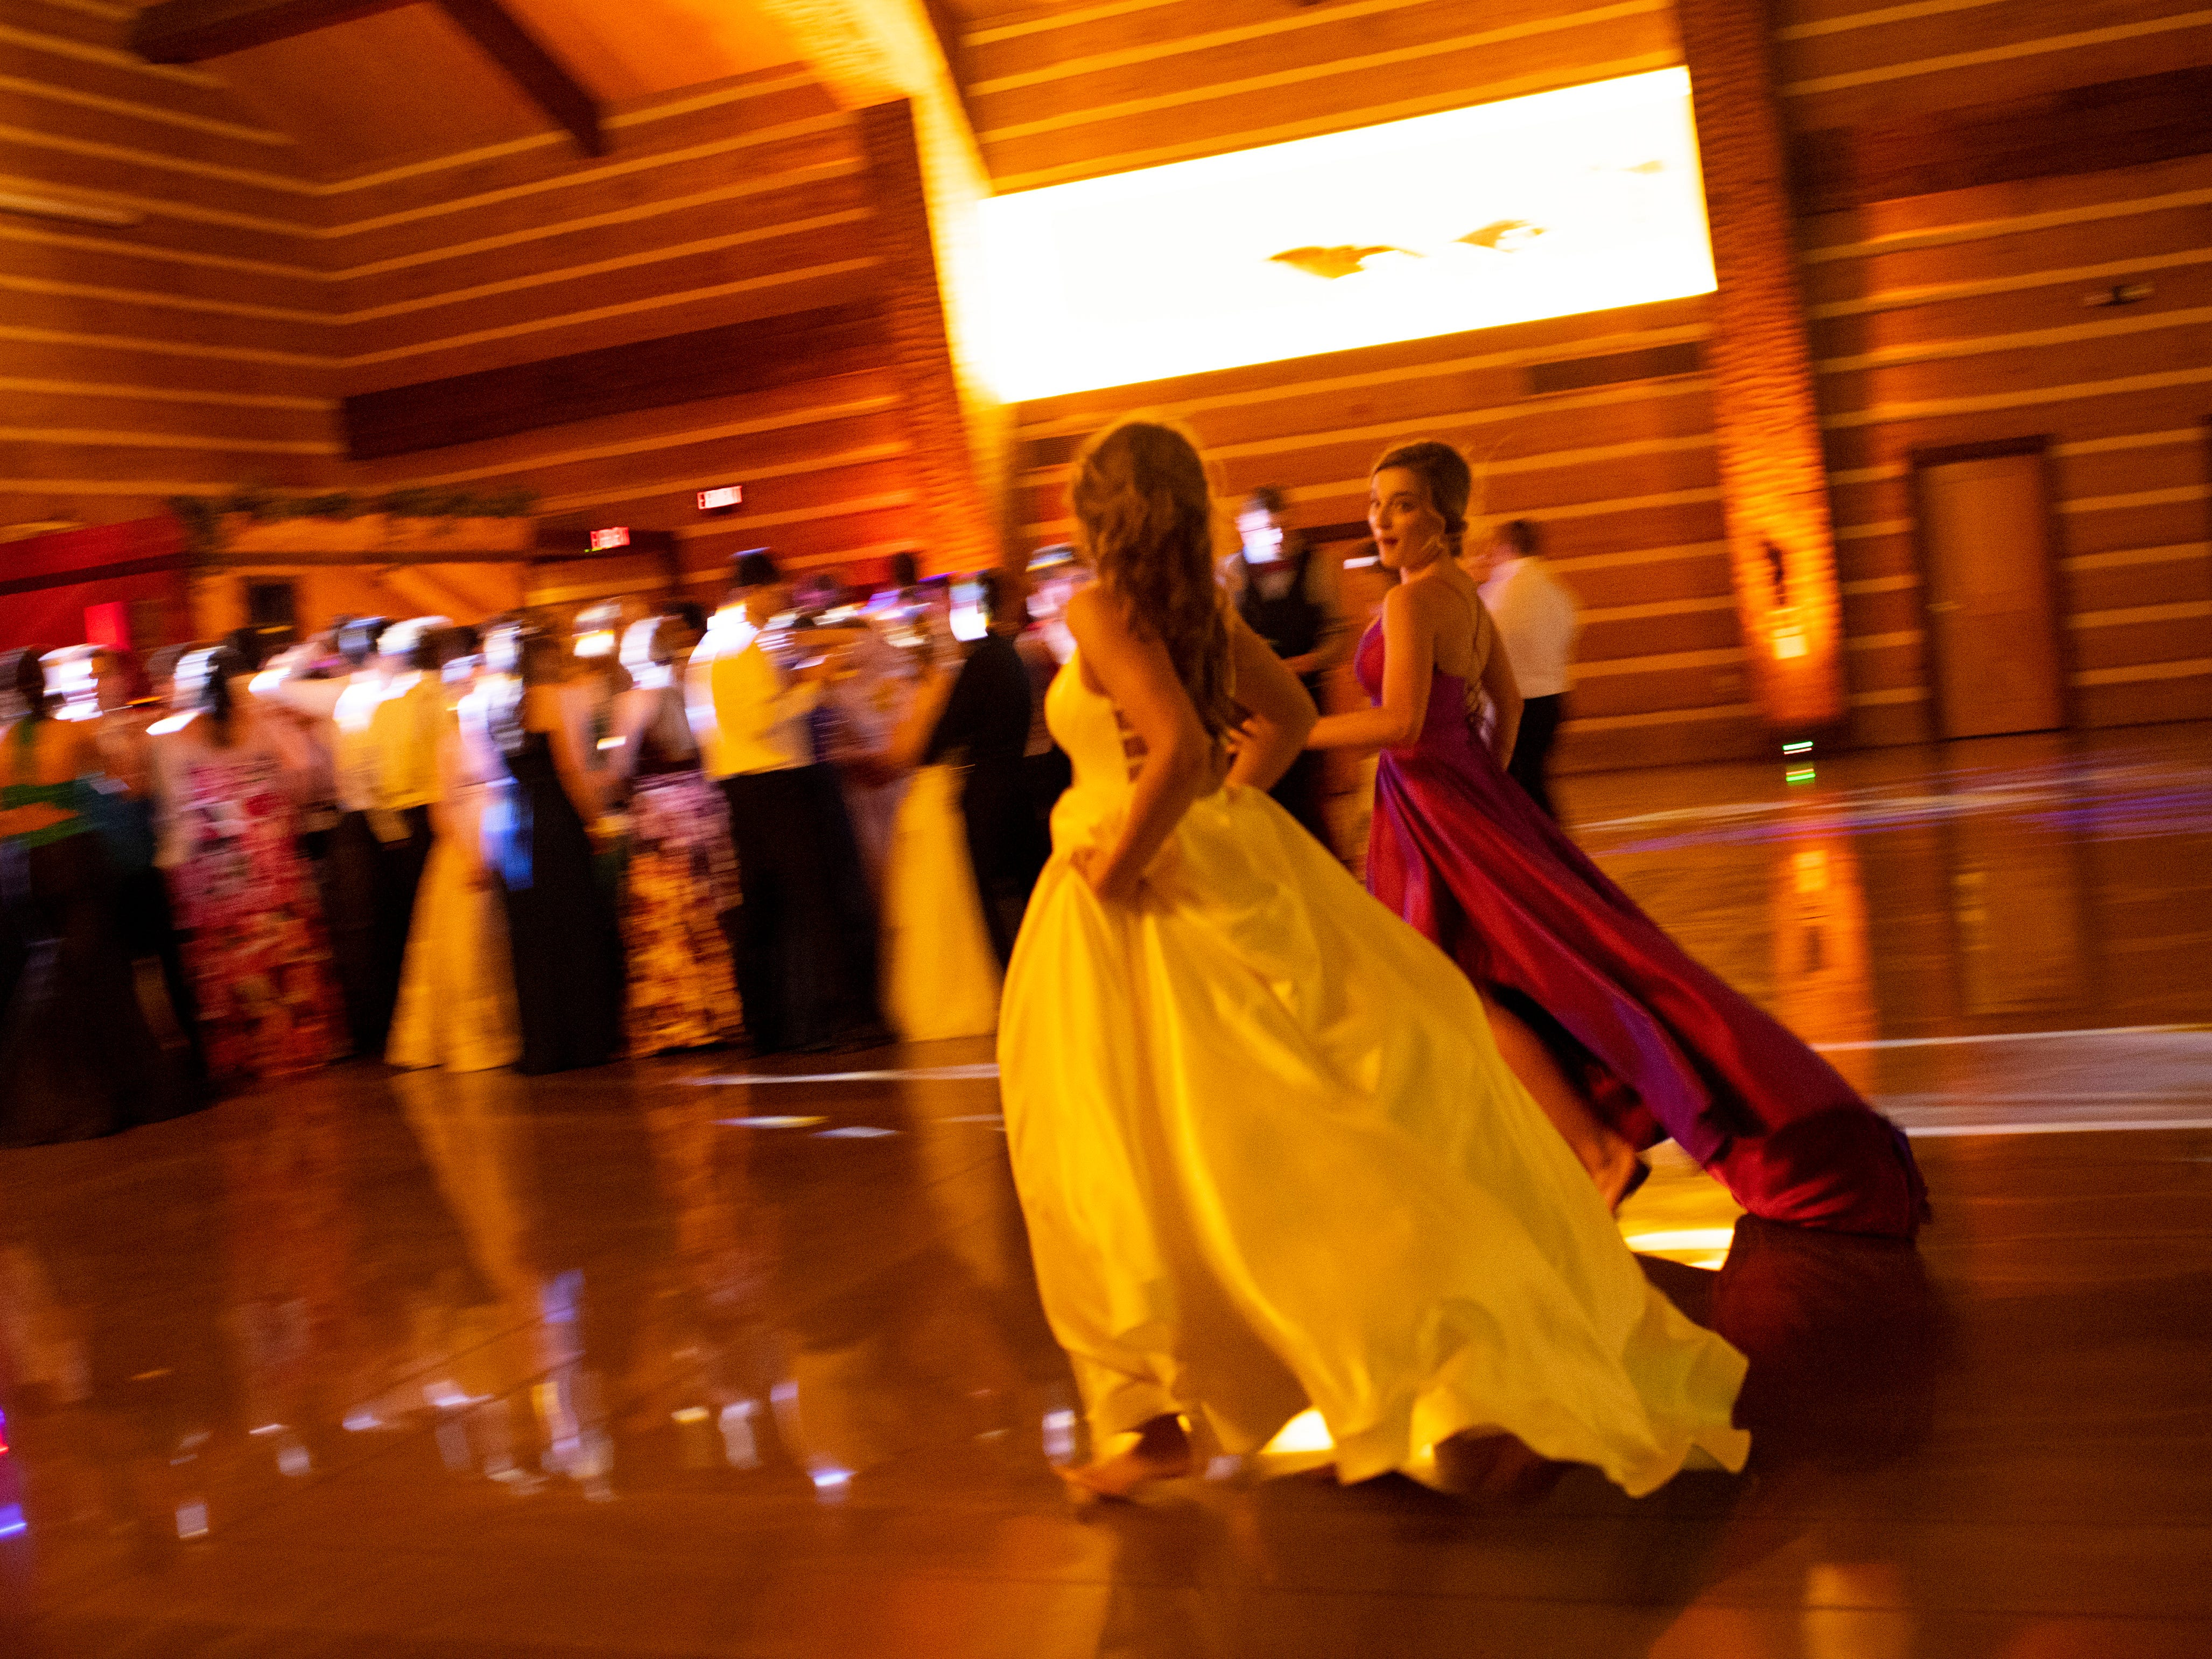 Attendees head to the stage area to dance at Mater Dei's prom at Burdette Park's Discovery Lodge Saturday night.